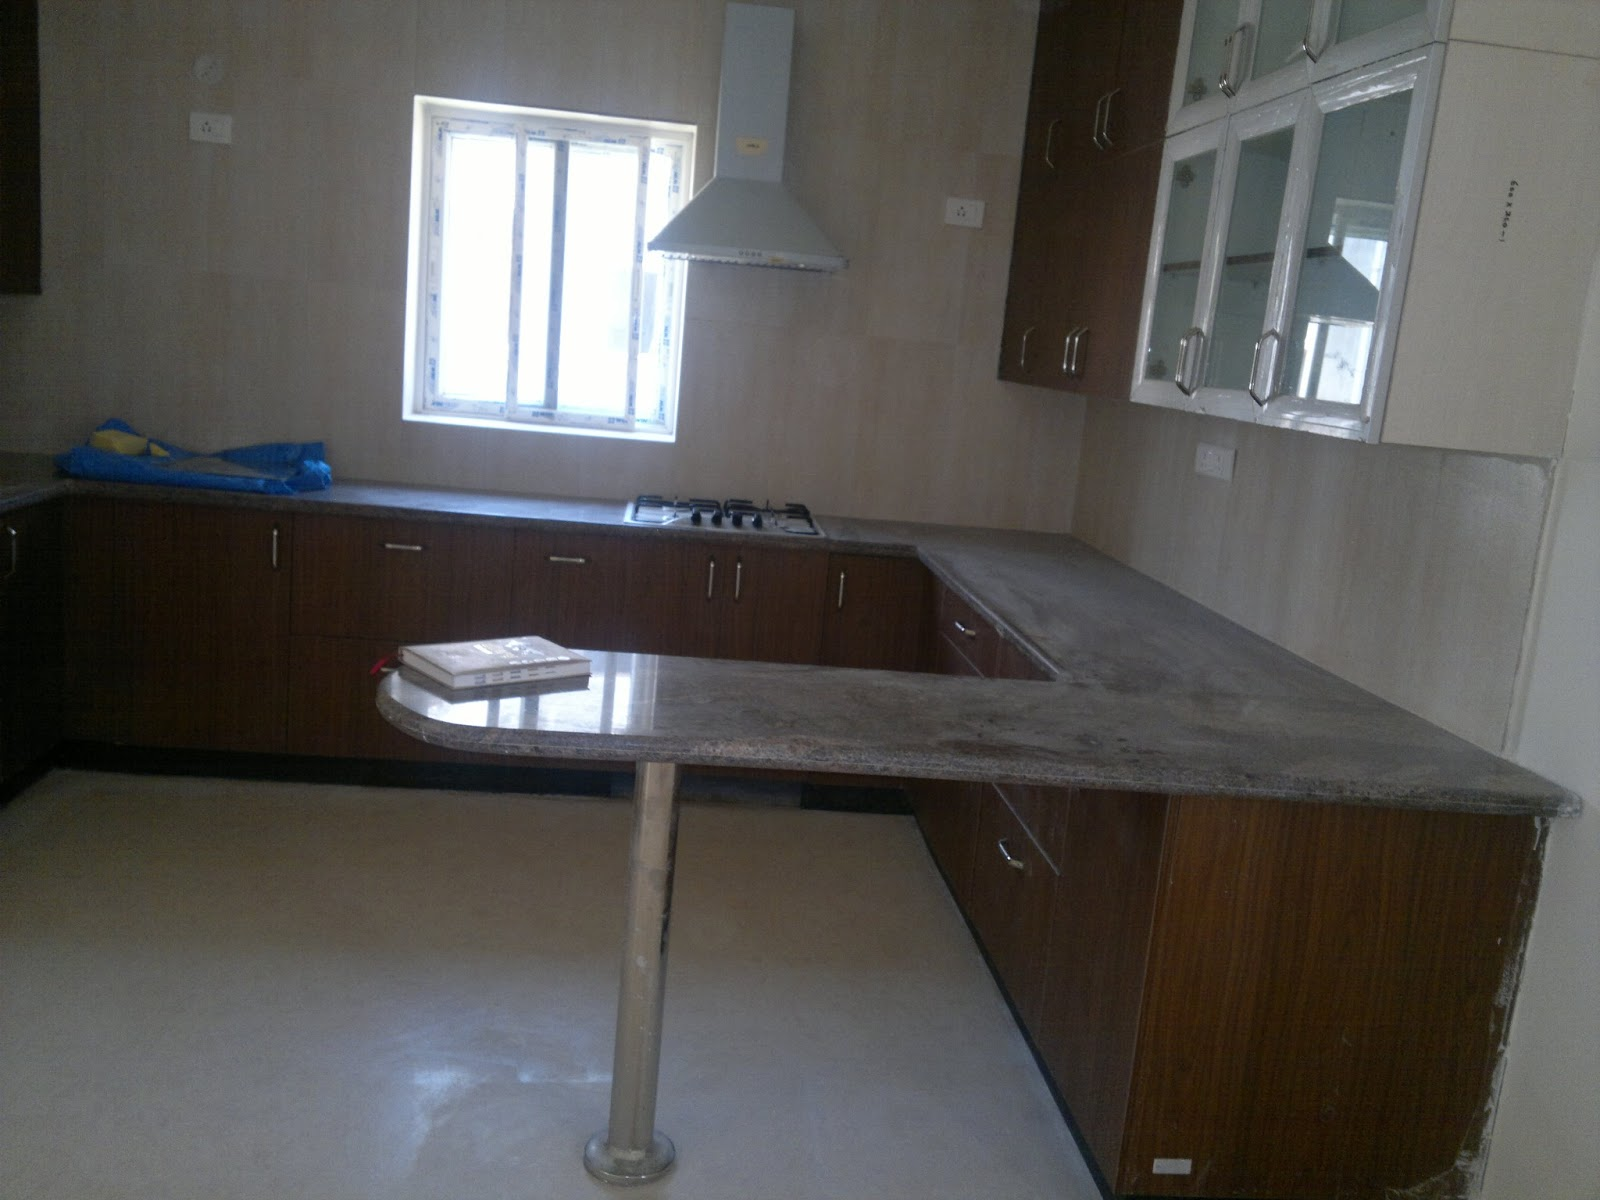 Interiors In Hyderabad Modular Kitchen Cost 2 8 Lakhs Including Granite Cladding And Breakfast